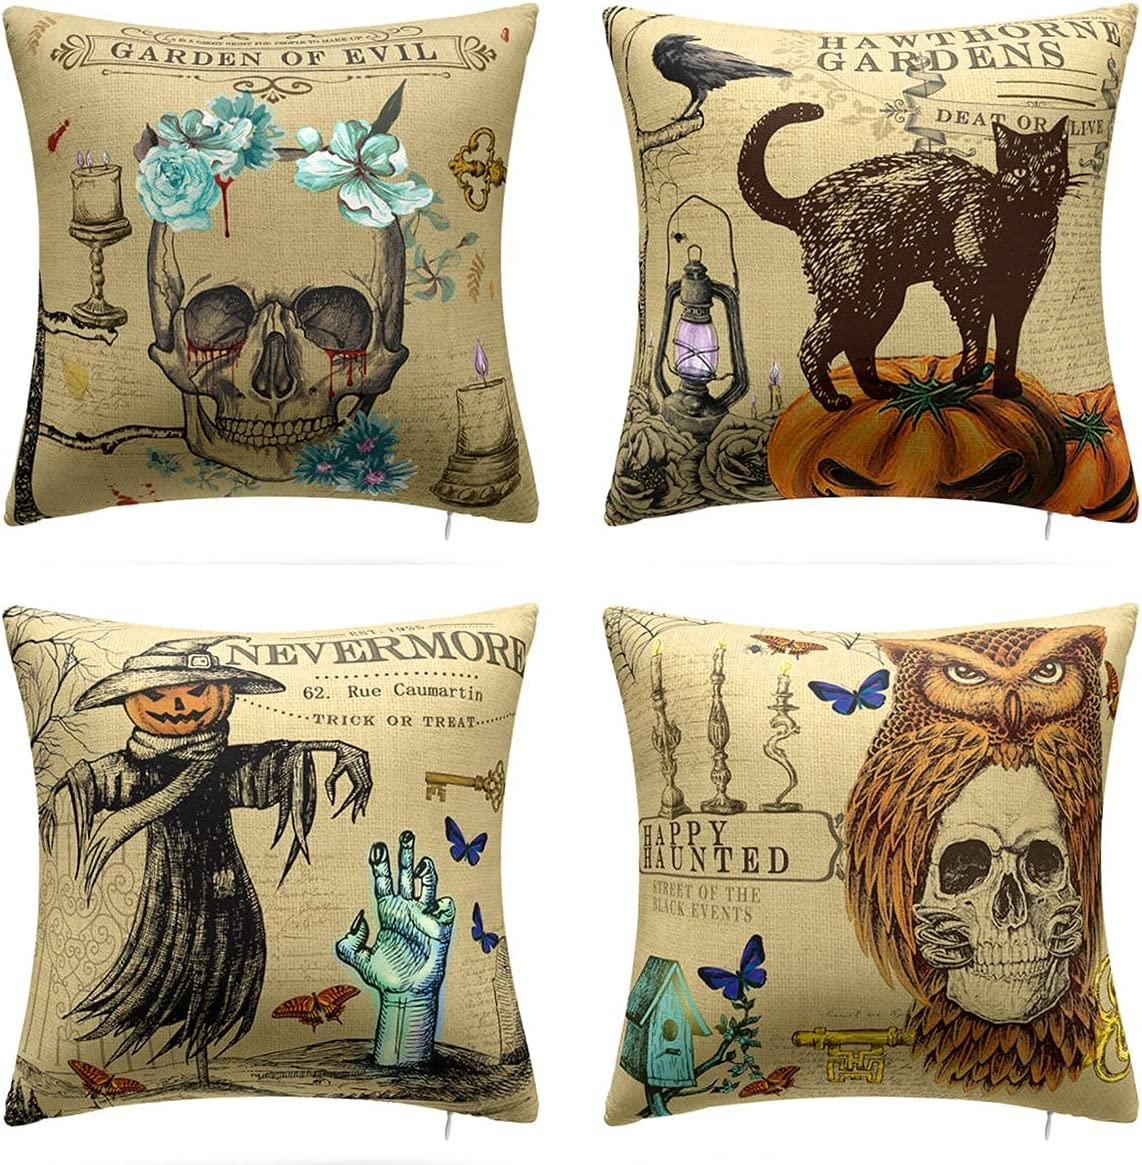 Mengt Halloween Pillow Covers Trick Or Treat Pumpkin Skull Couch Throw Pillow Covers 18 X18 Vintage Scary Black Cat Linen Pillow Cases Home Decorations Double Sided Pattern Home Kitchen